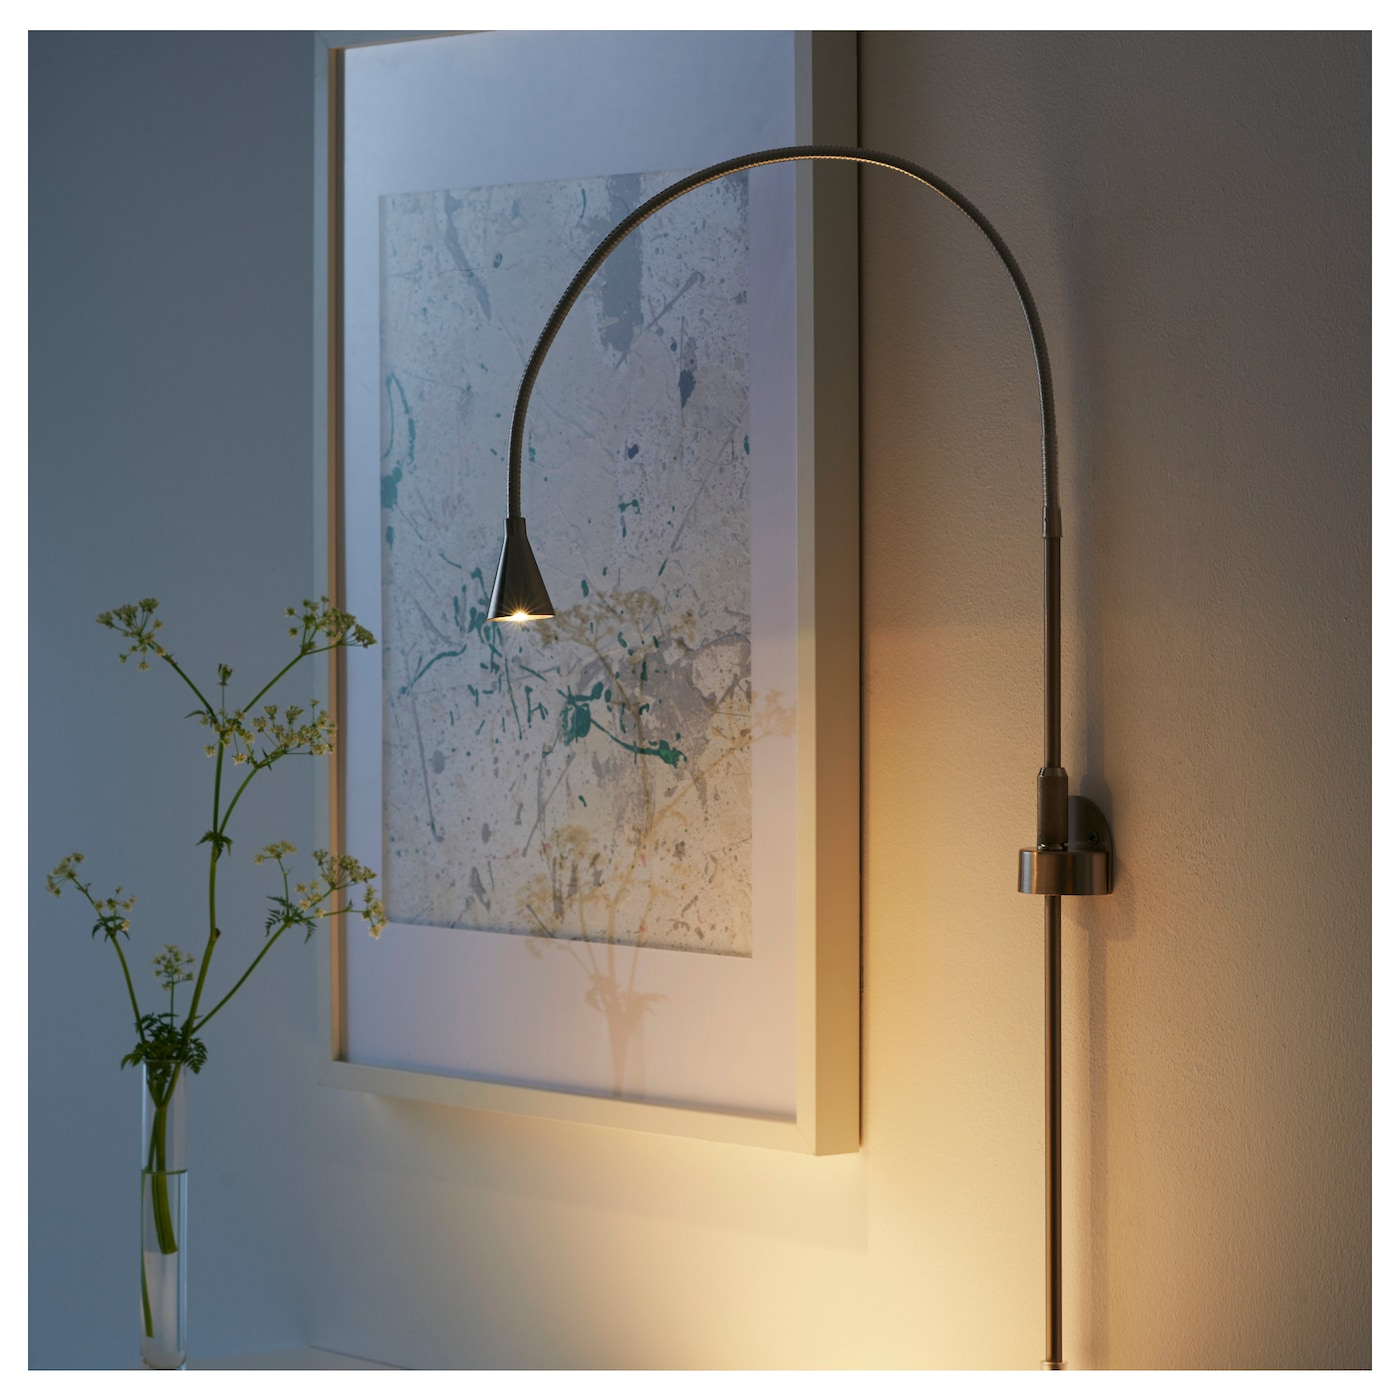 IKEA TIVED LED wall/clamp spotlight Slim design; easy to place in small spaces.